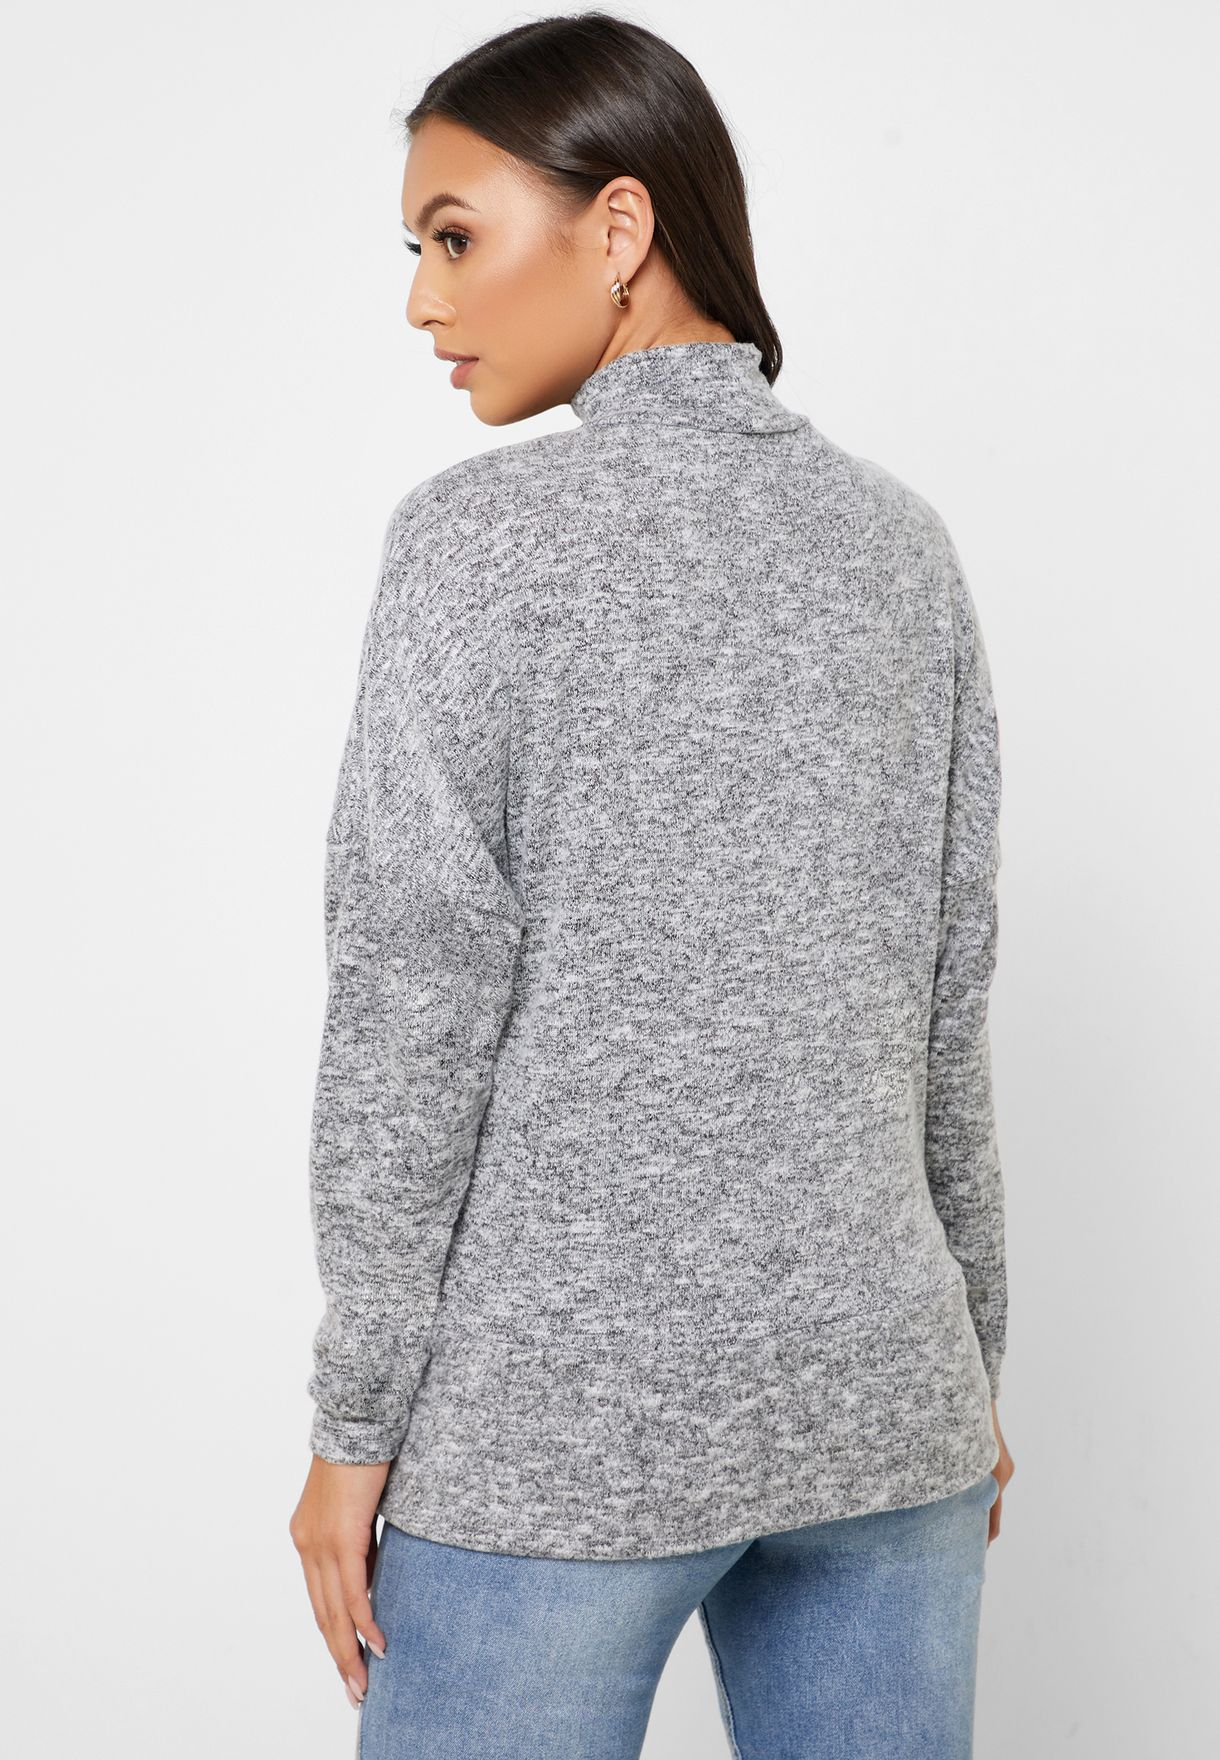 High Neck Textured Sweatshirt